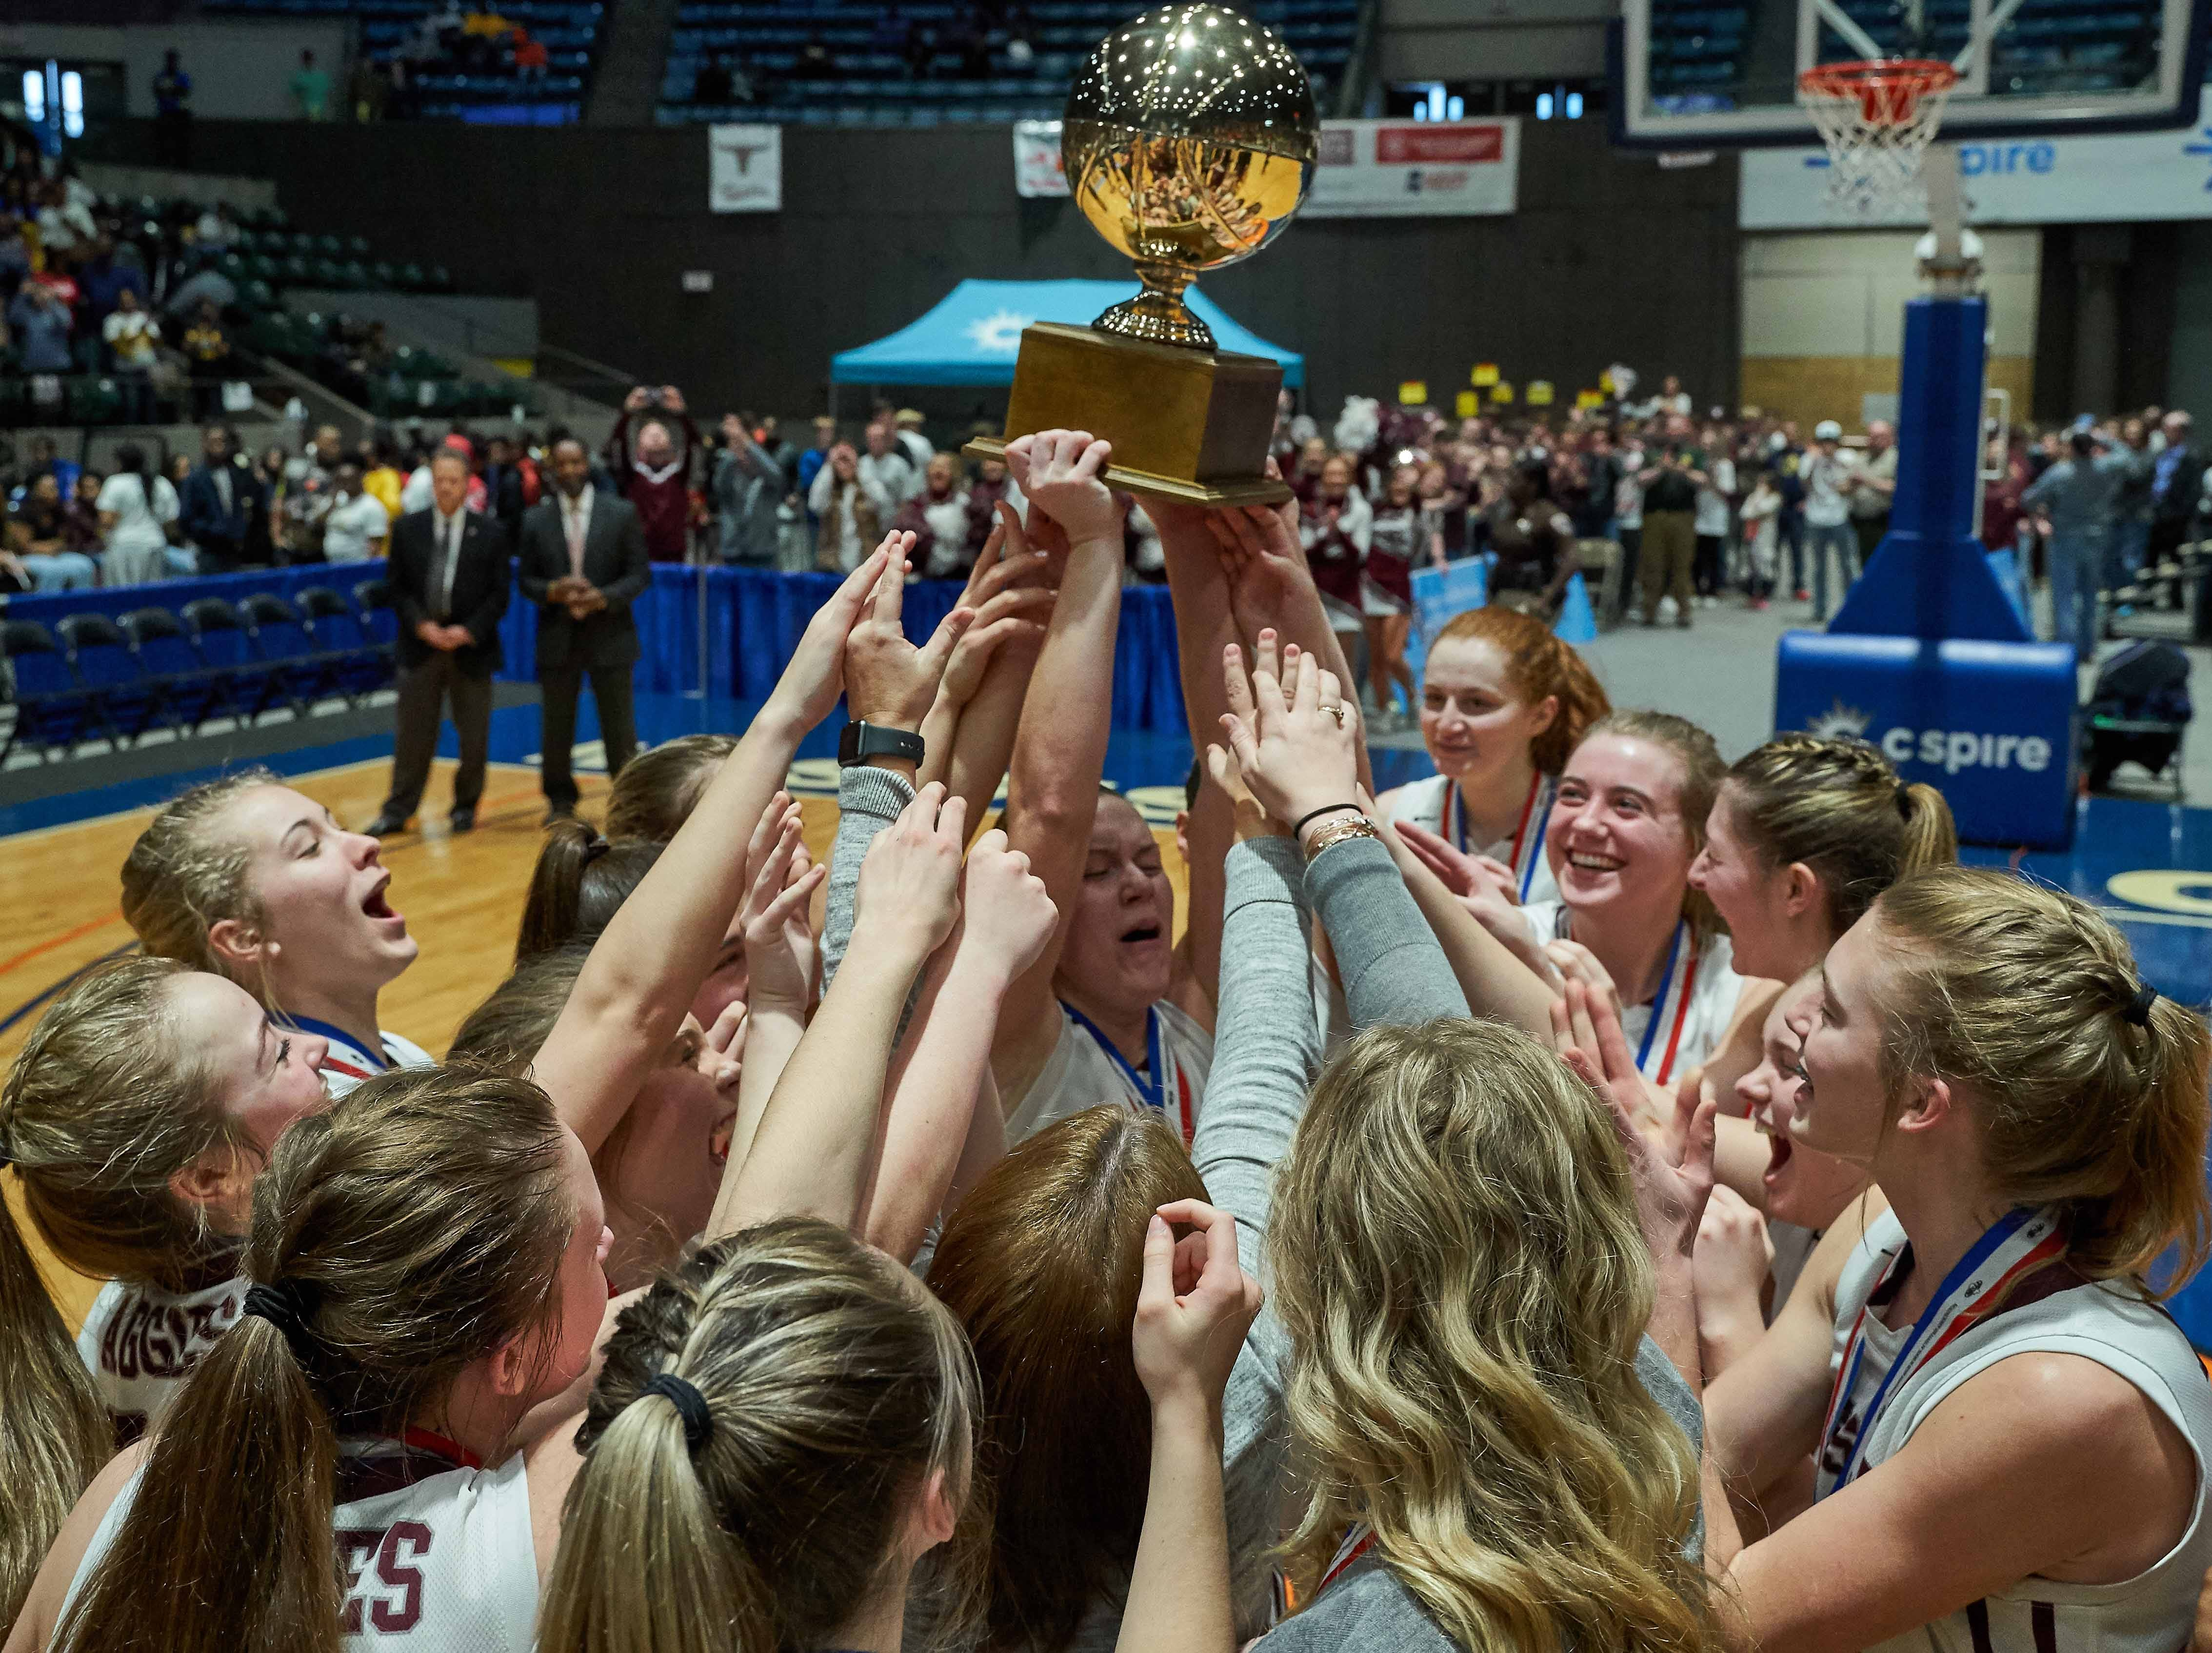 Kossuth celbrates with the trophy following their 48-44 win against Belmont in the MHSAA 3A Girls Basketball Championship Finals held at the Mississippi Coliseum in Jackson, MS, Saturday March 9th, 2019.(Bob Smith)